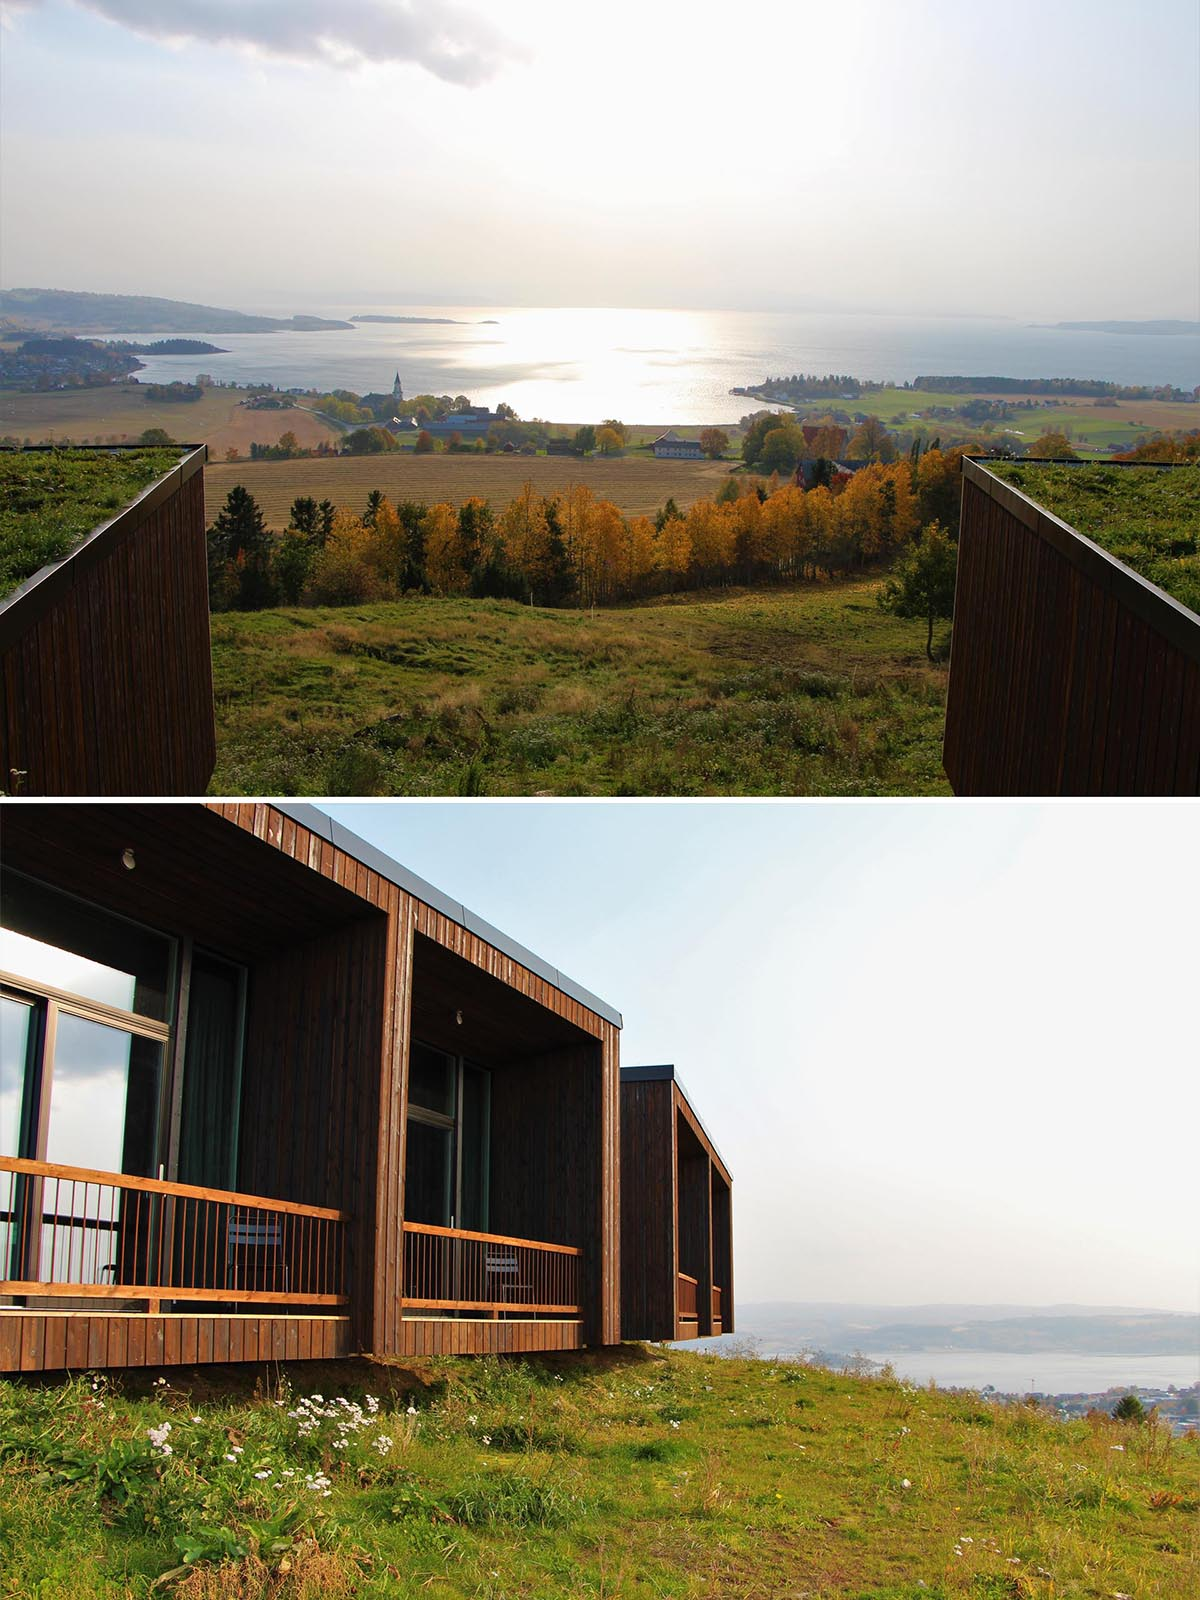 Hotel rooms with green roofs that allow them to blend into the hill.